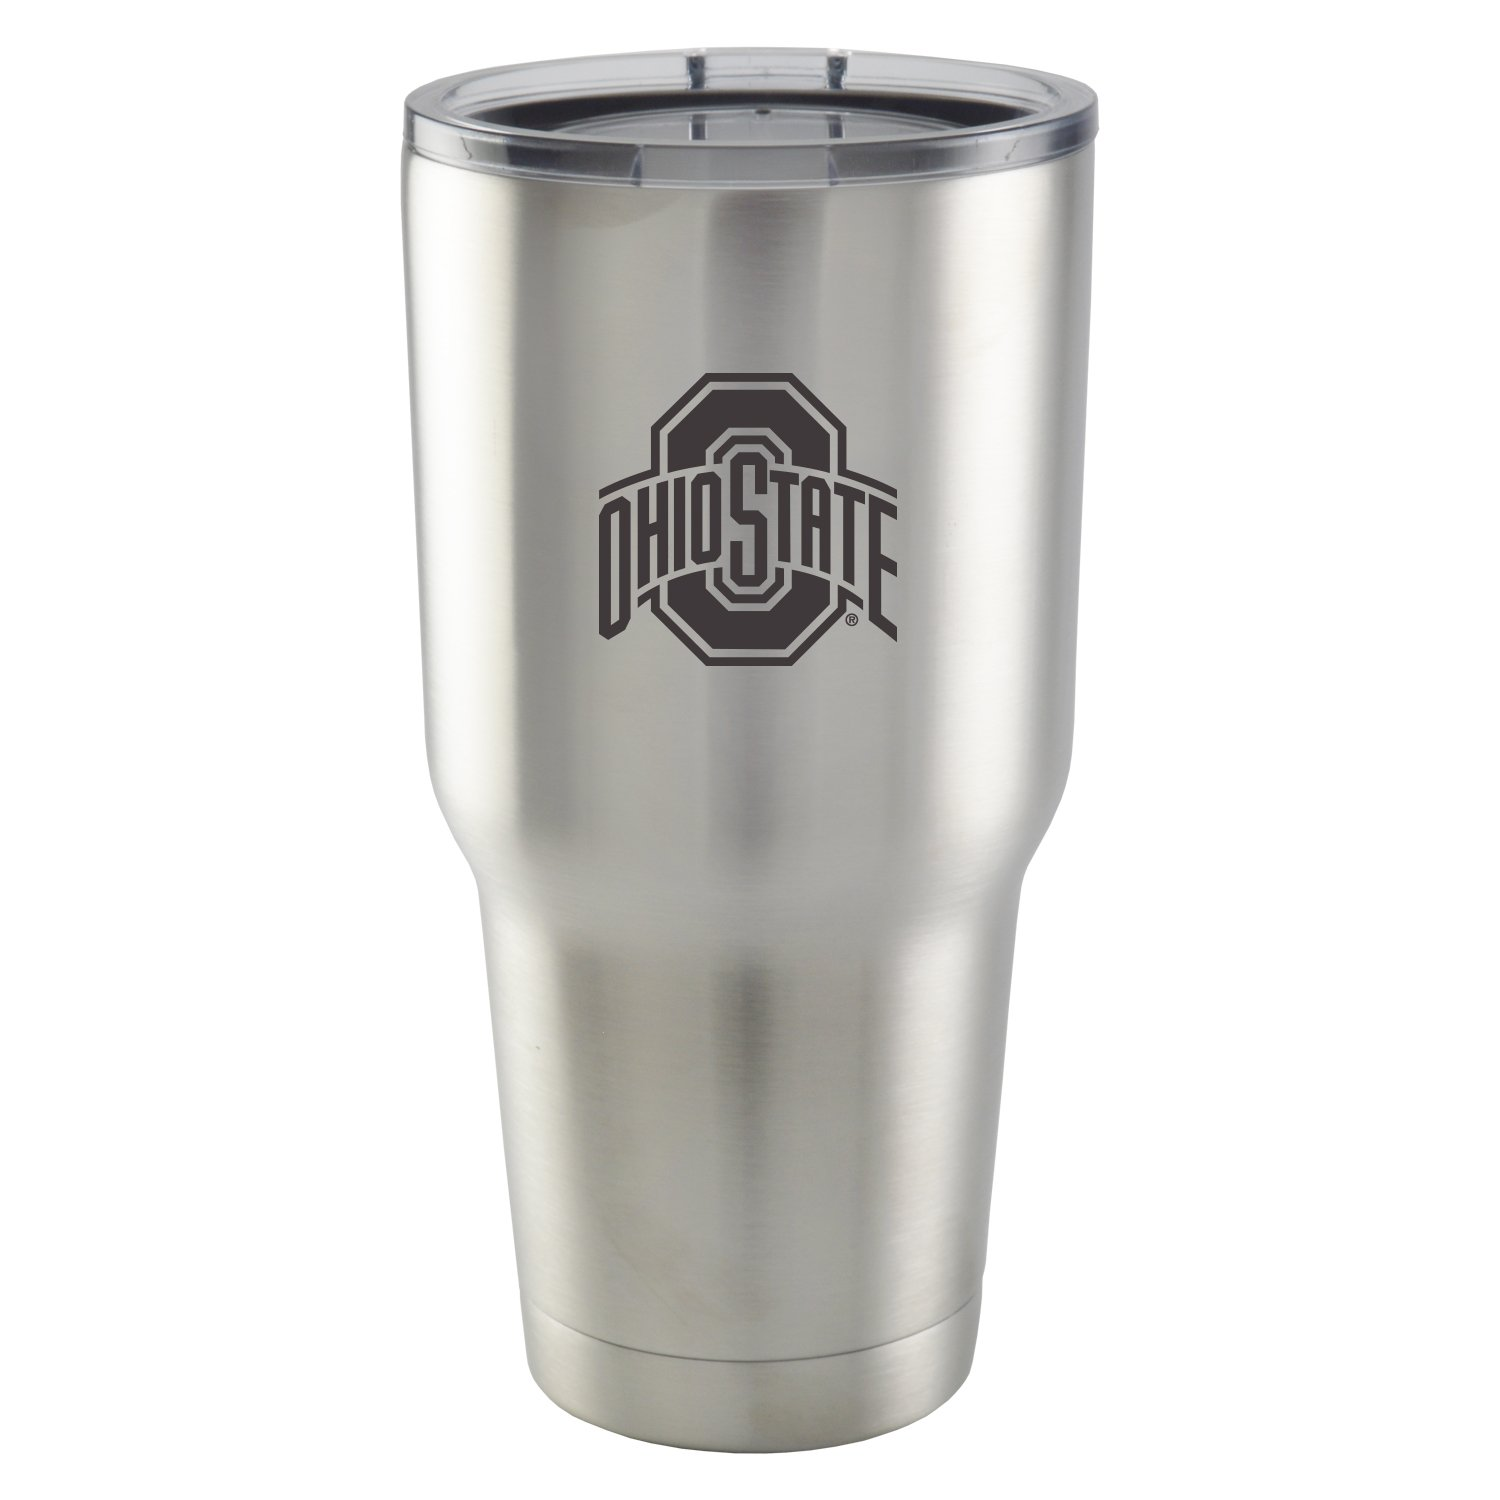 Ohio State University|30 oz Vacuum Insulated Stainless Steel Tumbler with Acrylic Lid|BPA Free|Collegiate Licensed NCAA Product|